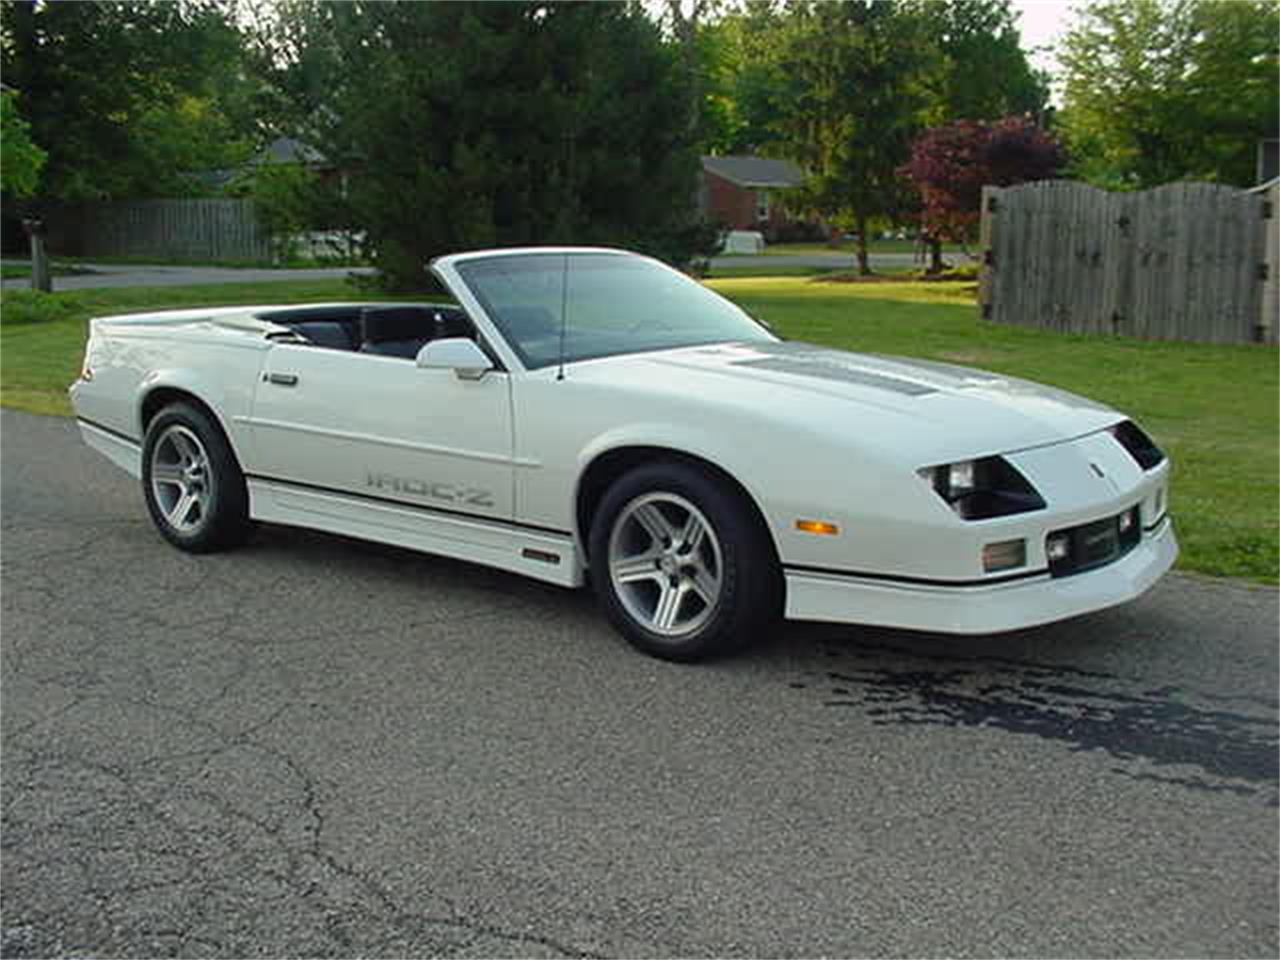 1989 Chevrolet Camaro IROC-Z for sale in Milford, OH – photo 33